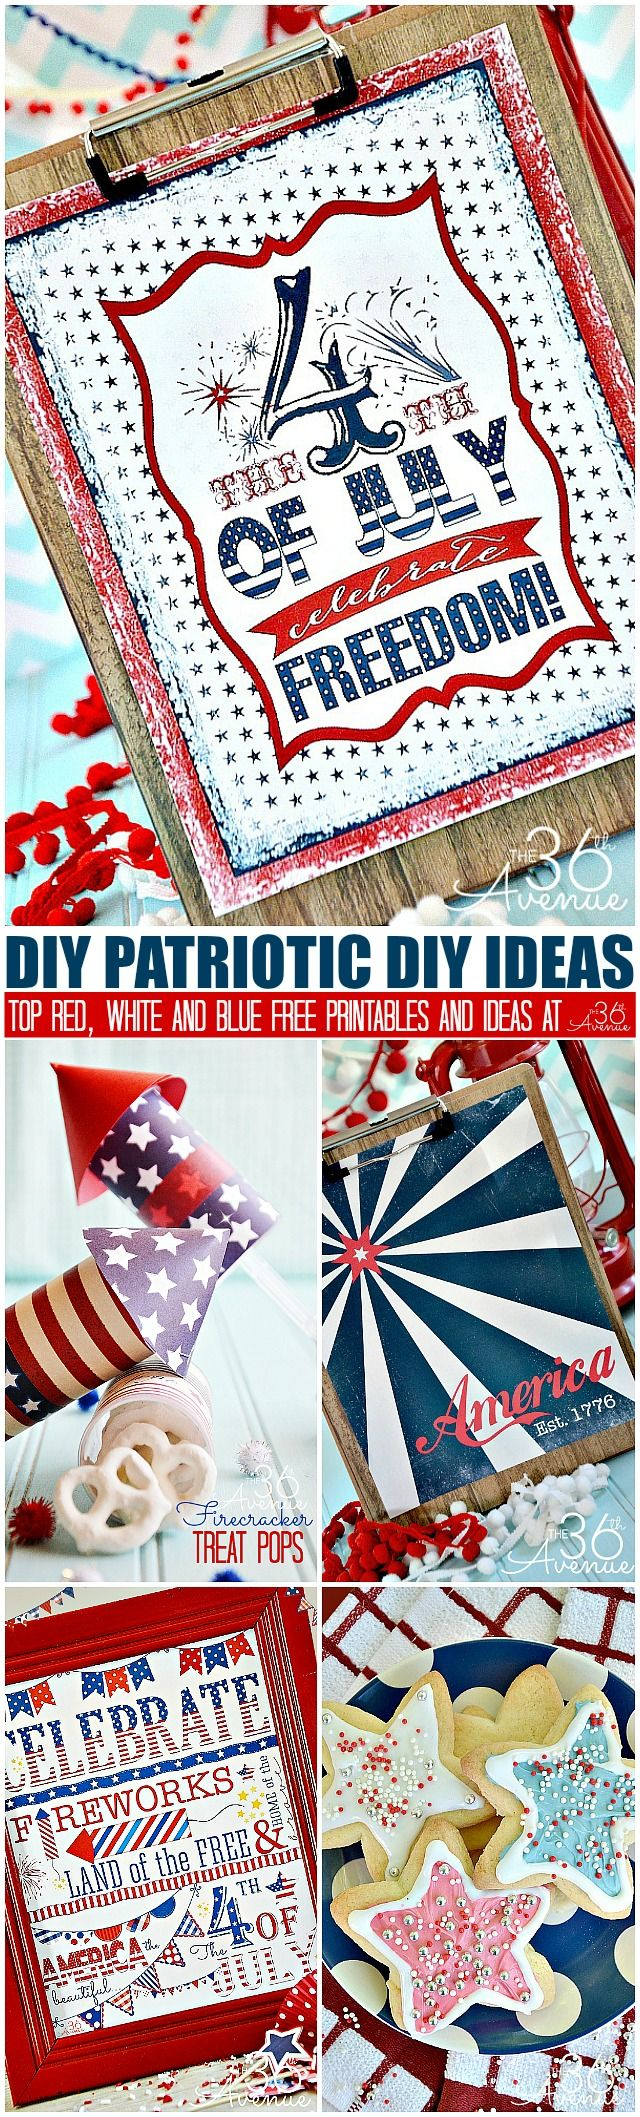 Fourth of July Top Free Printables and DIY Patriotic Ideas at the36thavenue.com Pin it now and make them later!